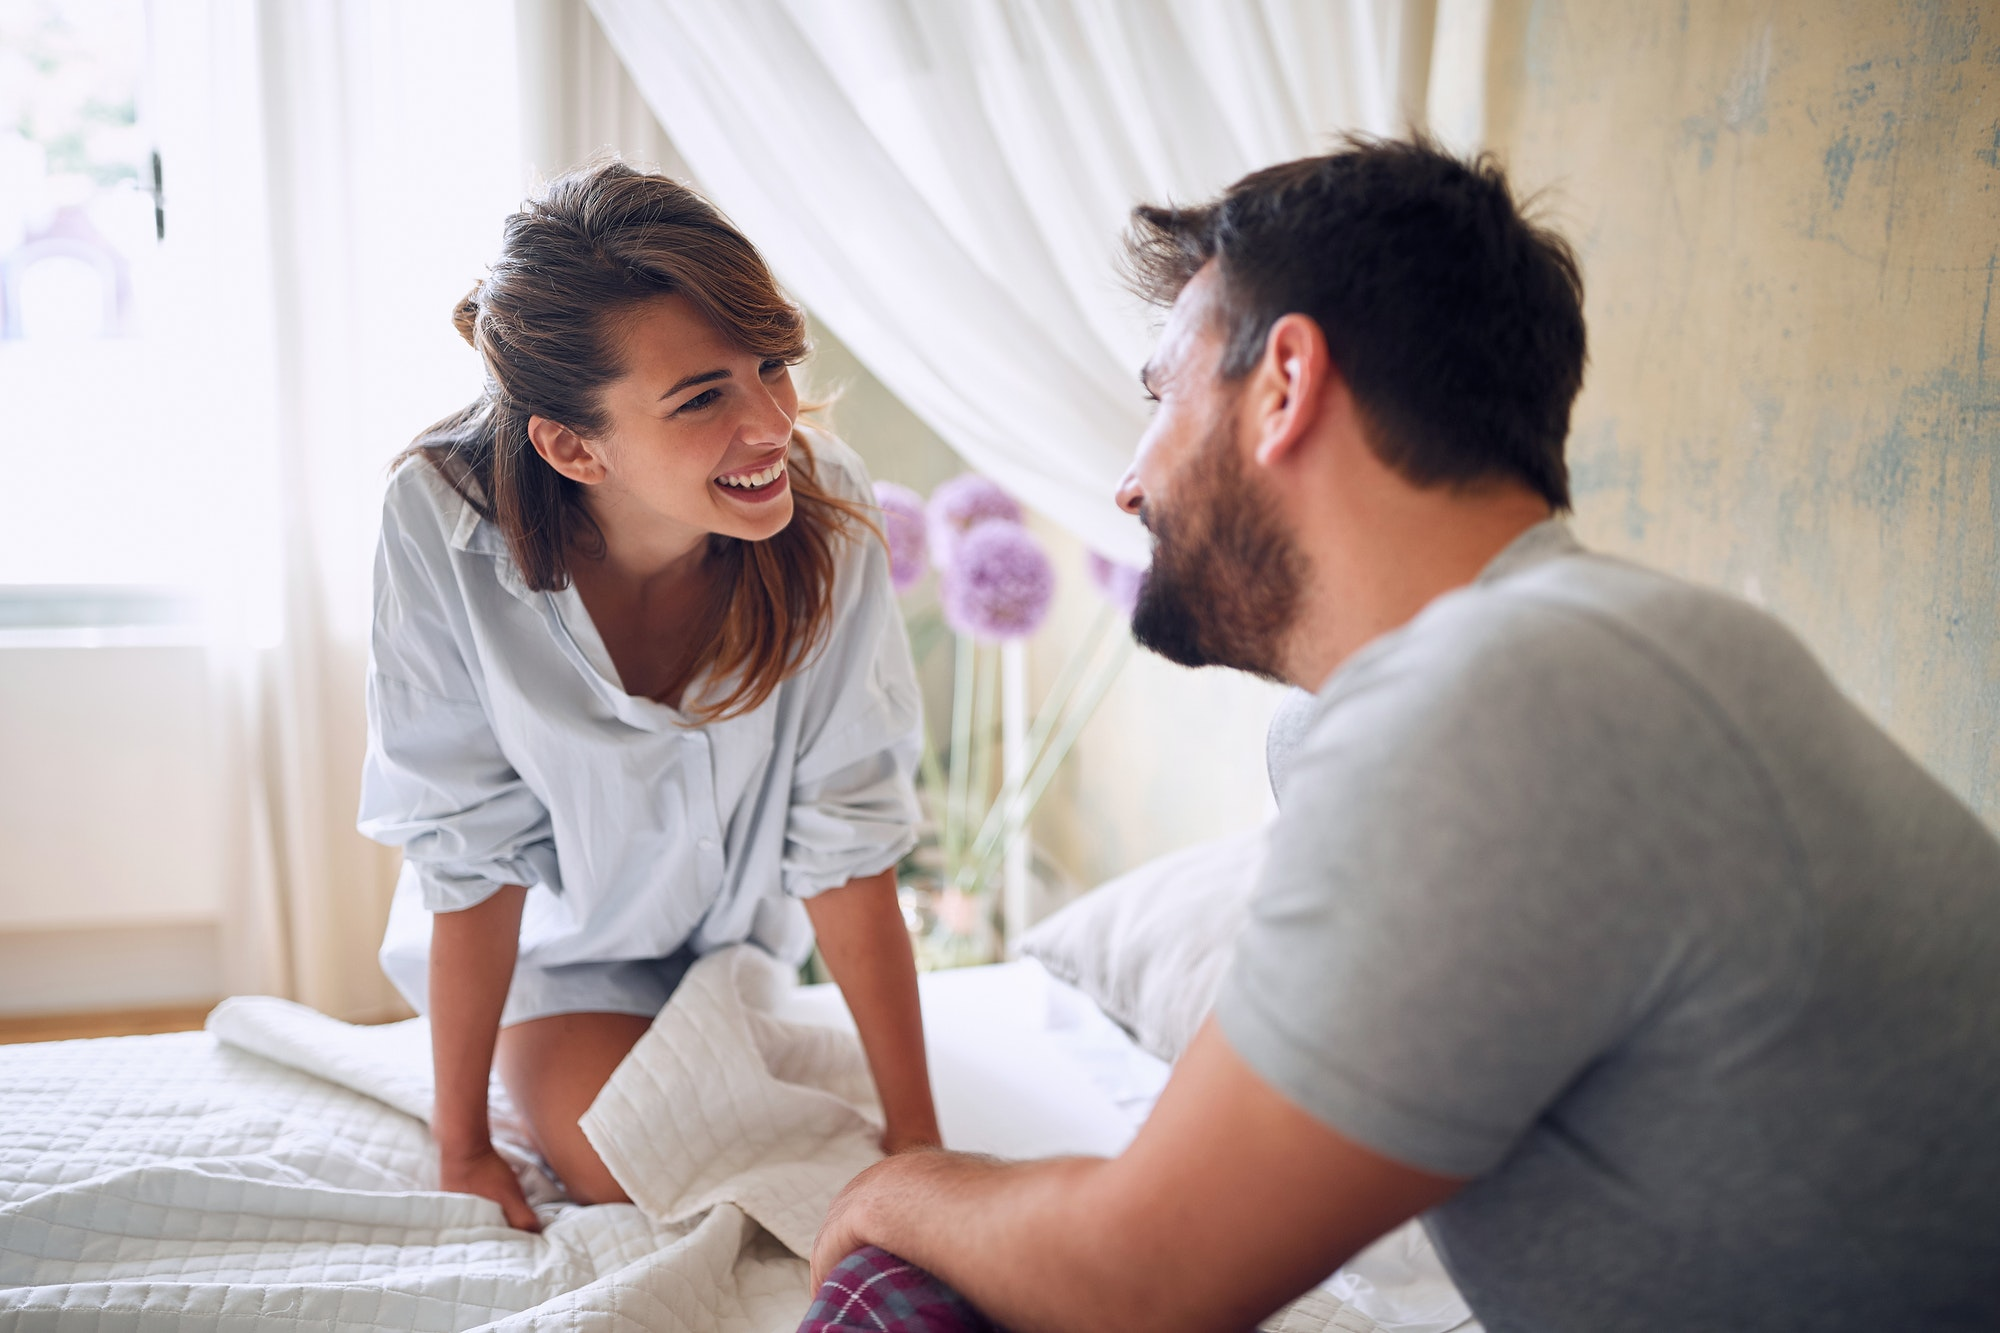 Smiling woman in bed showing emotions and love.Romantic couple in love on bed.